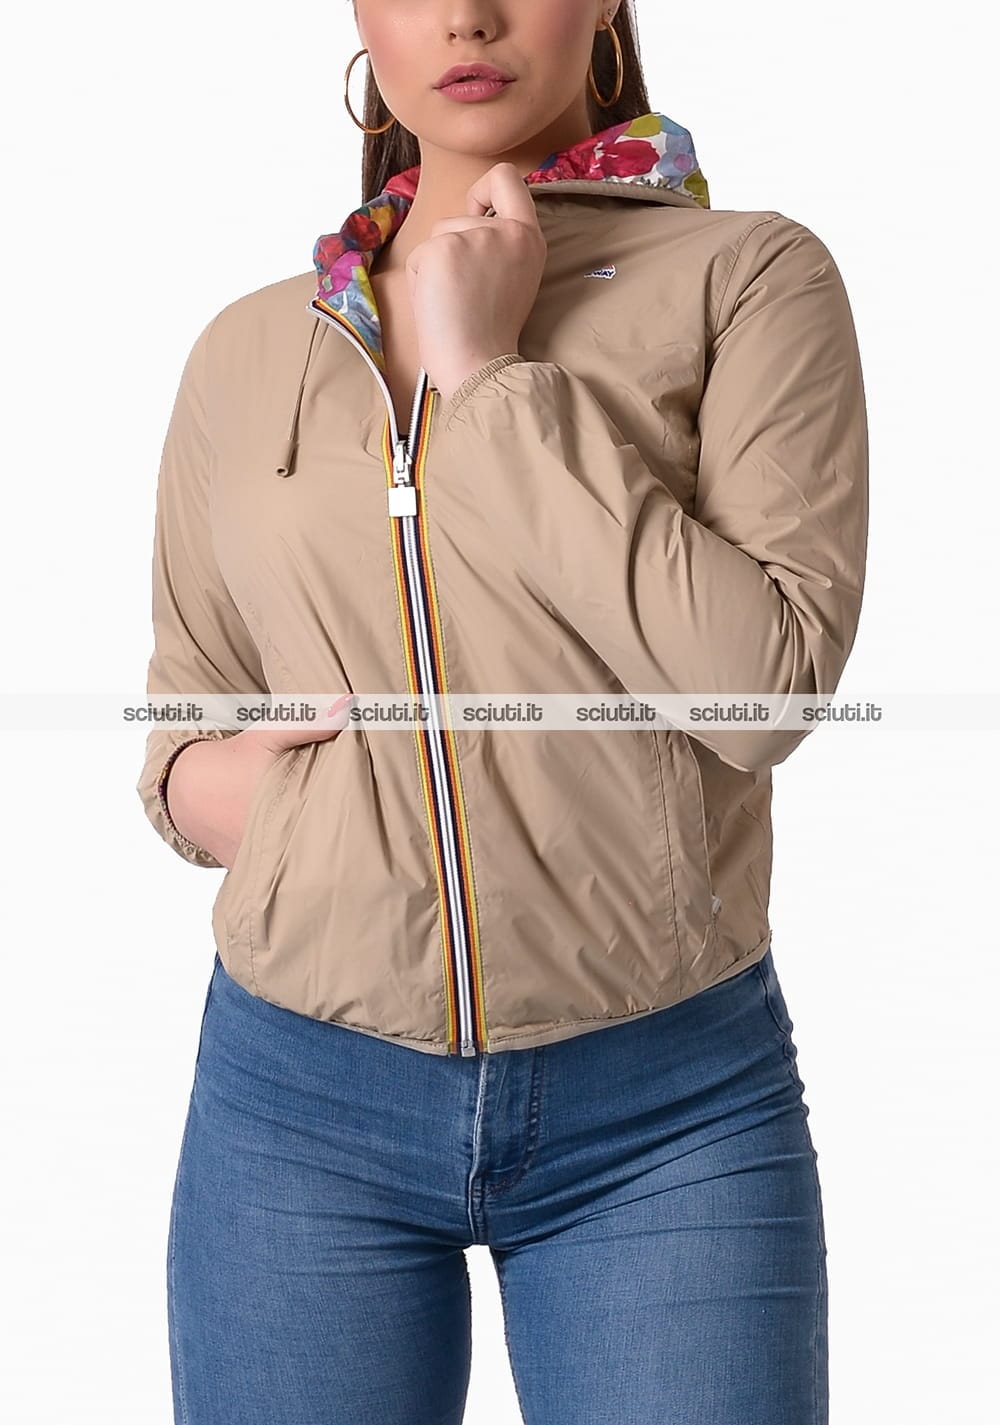 Giubbotto Kway donna Lily plus double graphic beige fantasia floreale